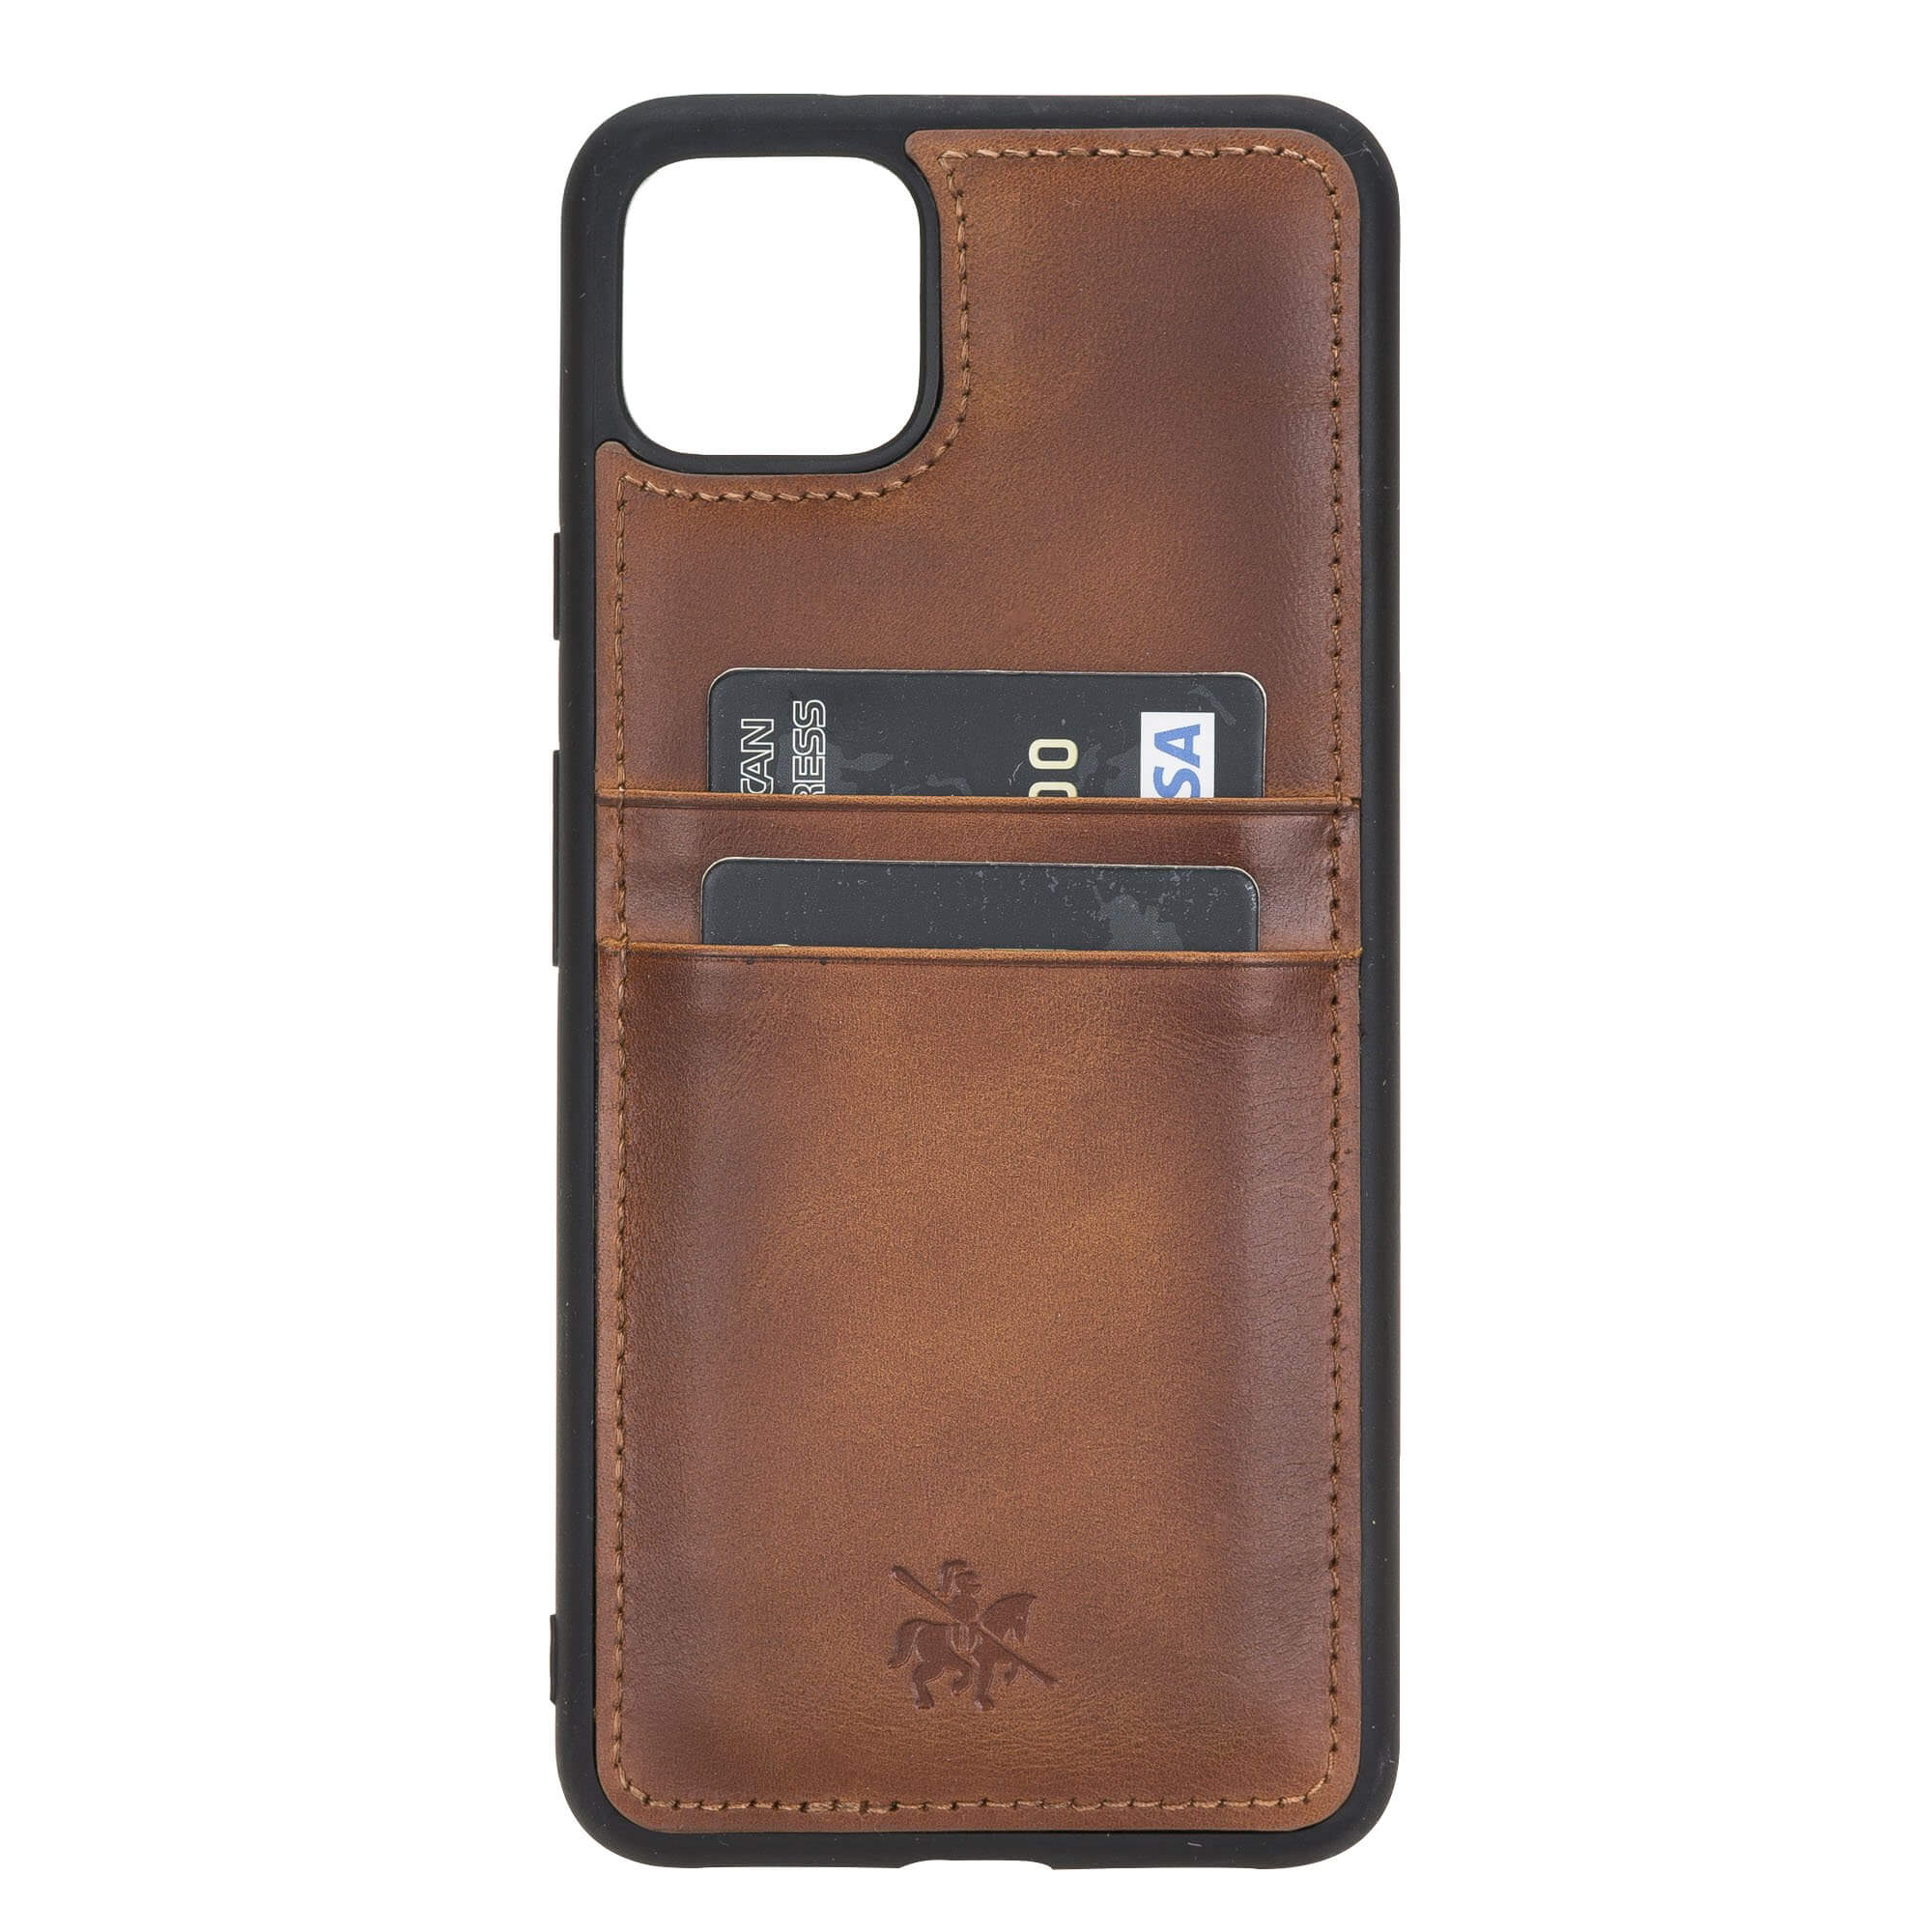 Wristlet Tooled Google Pixel 4 xl 3a3a xl5 4 xl leather wallet case Genuine Leather Real Leather Flip